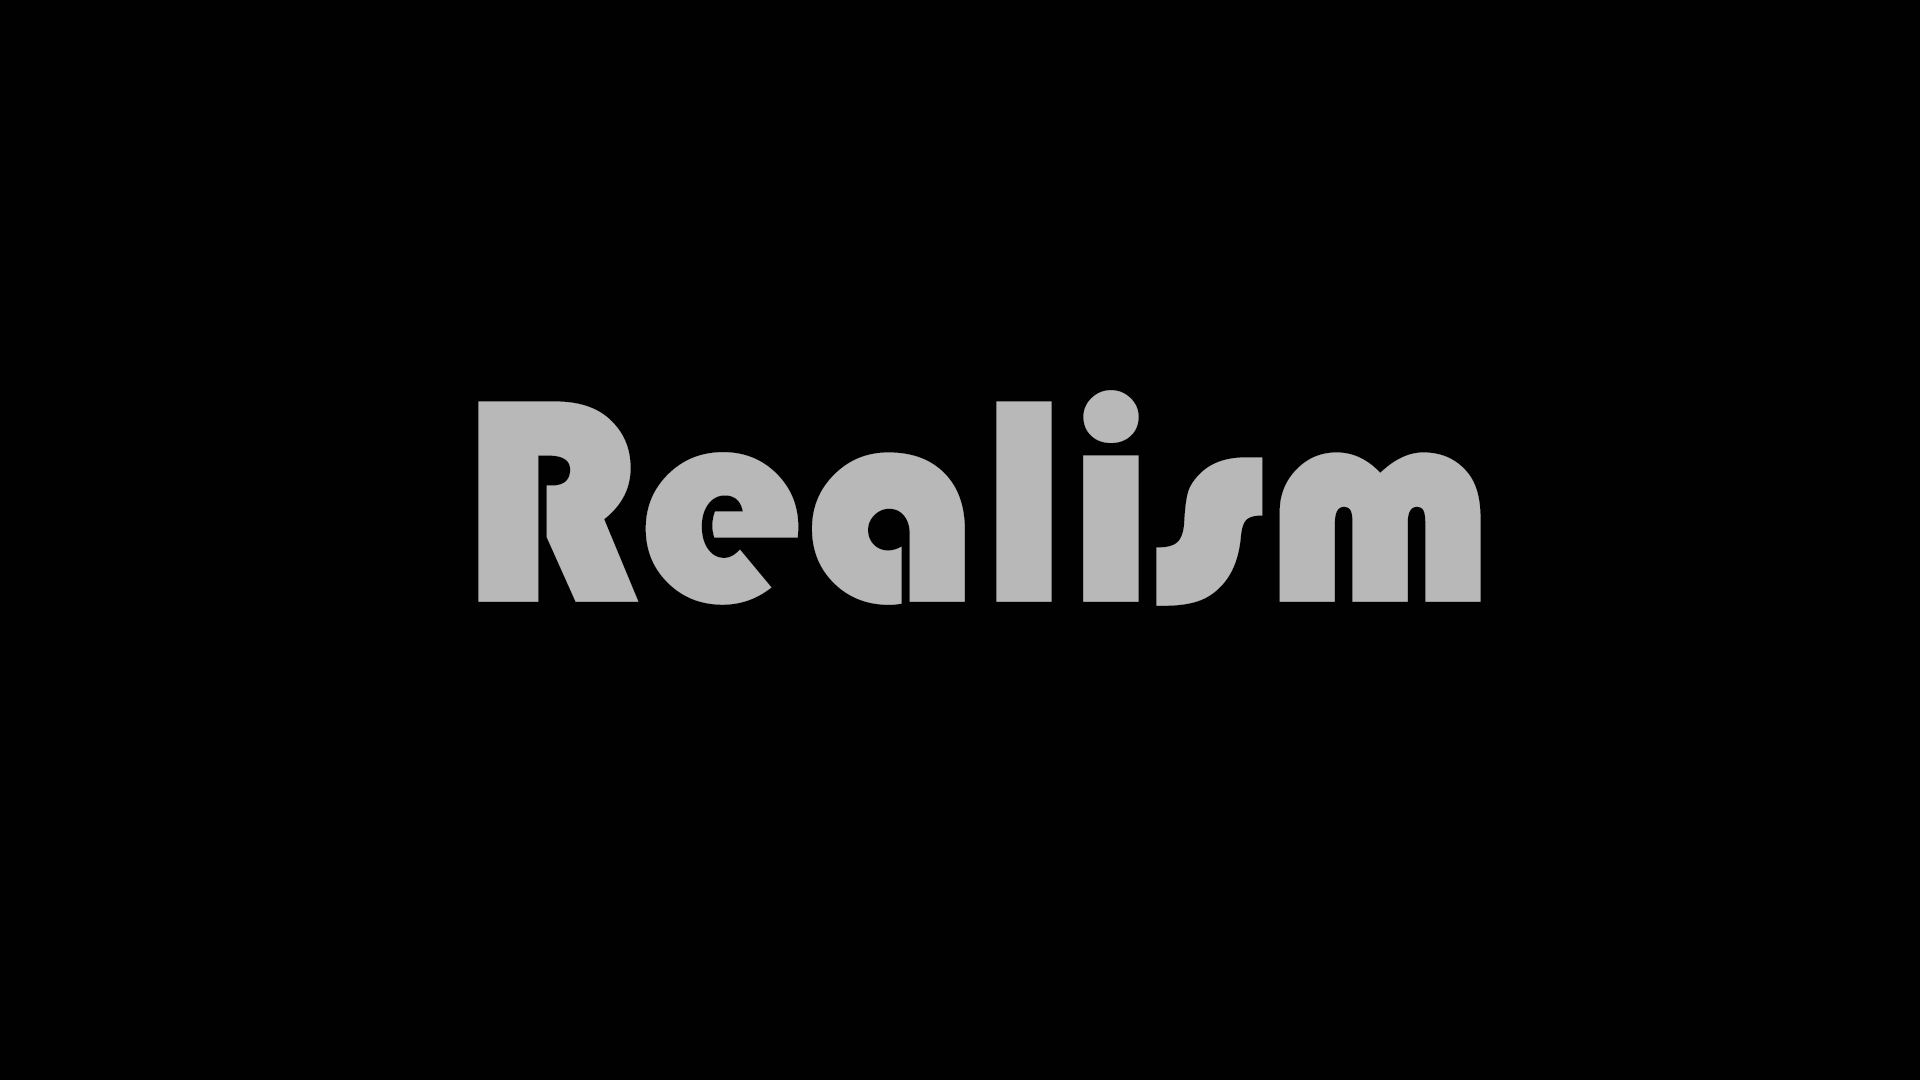 Realism by thesloveniandevil